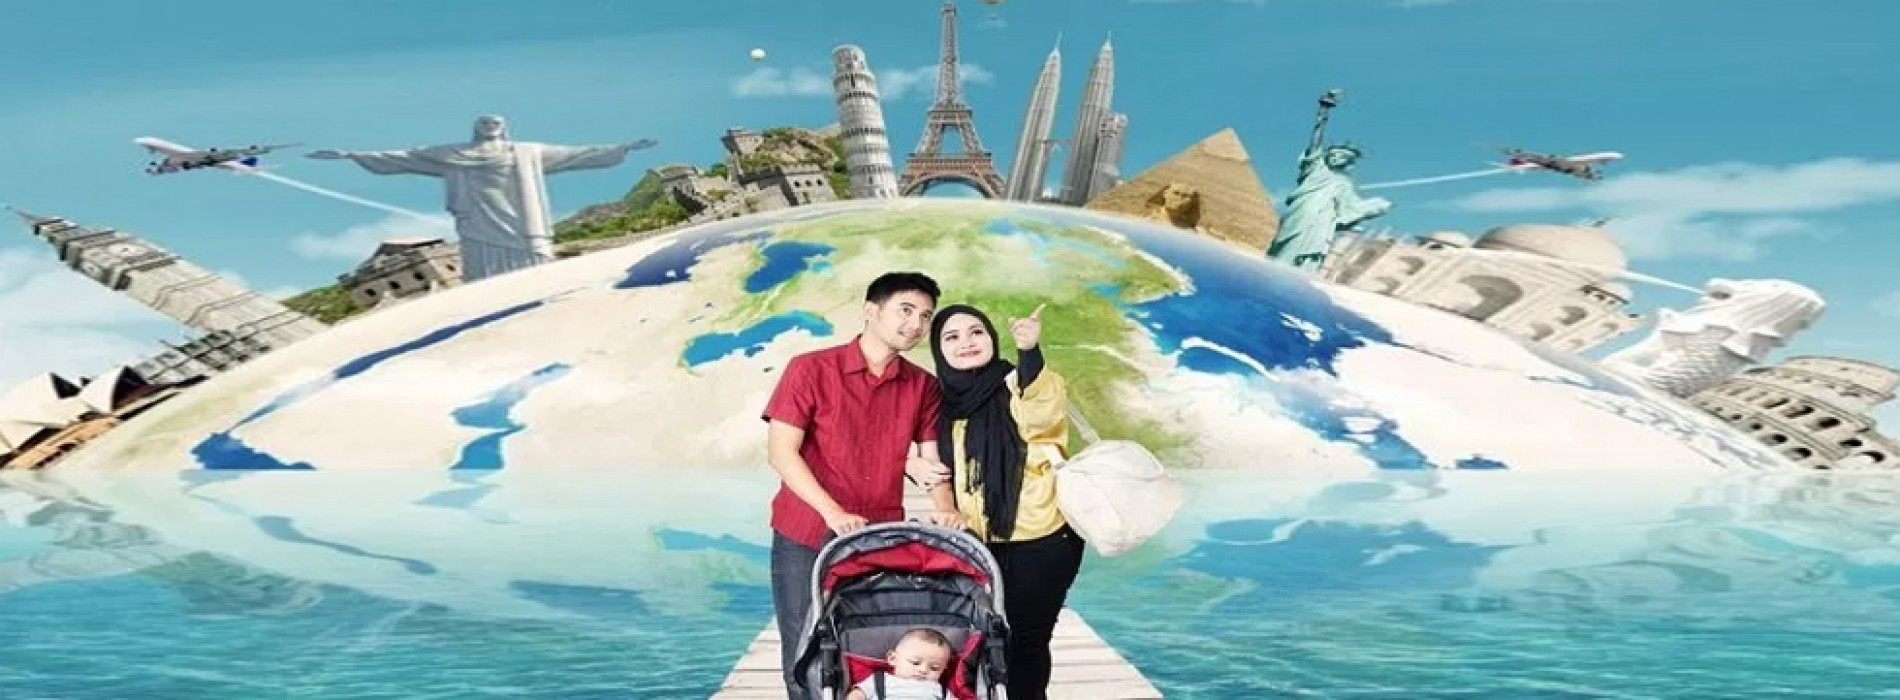 Muslim millennial travel report to be launched at ITB Asia 2017